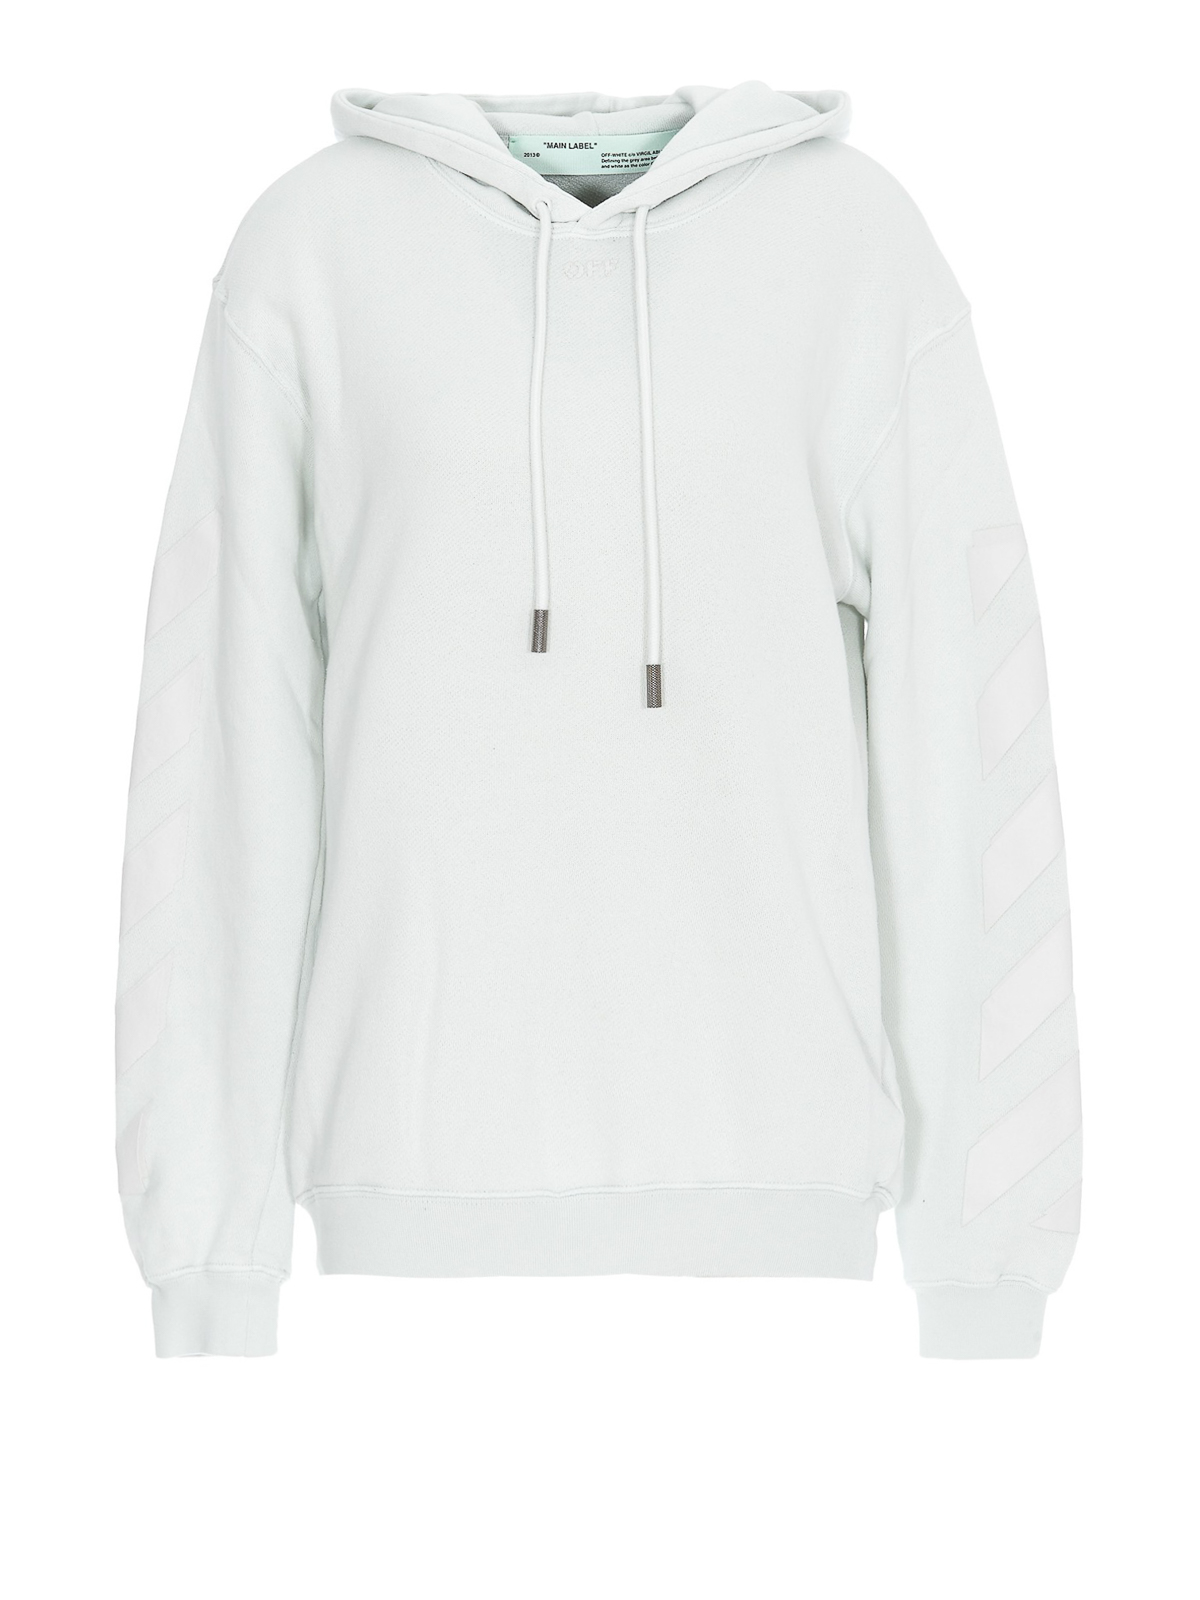 Off-White Striped Inserts White Cotton Hoodie In Green